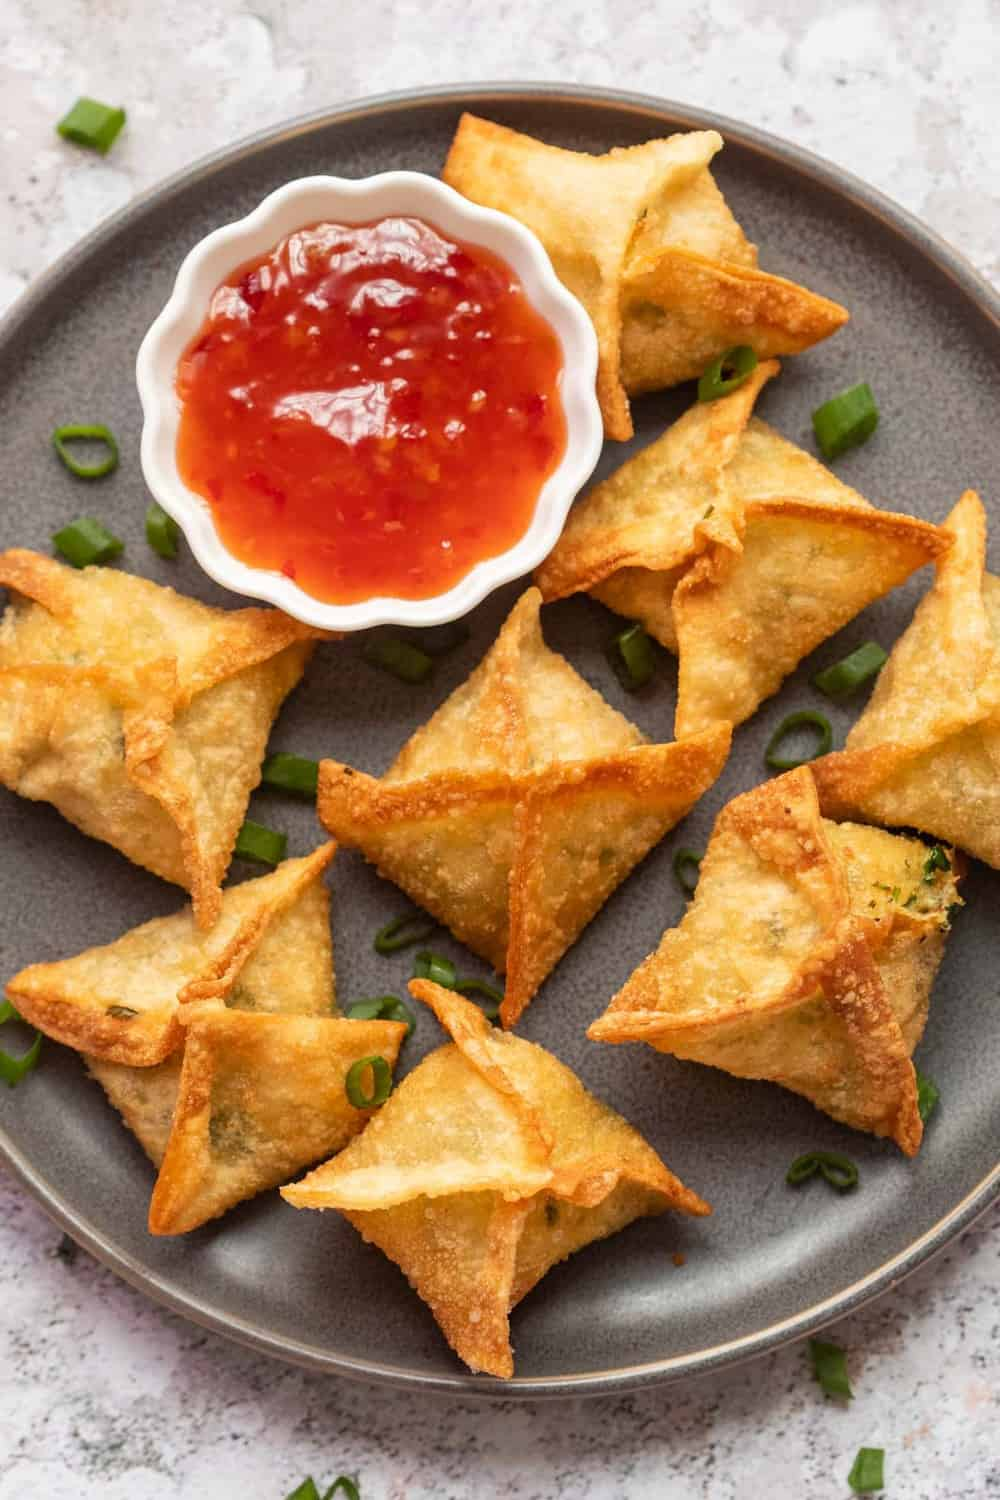 Crab rangoon served on a grey plate with sweet chilli sauce on the side